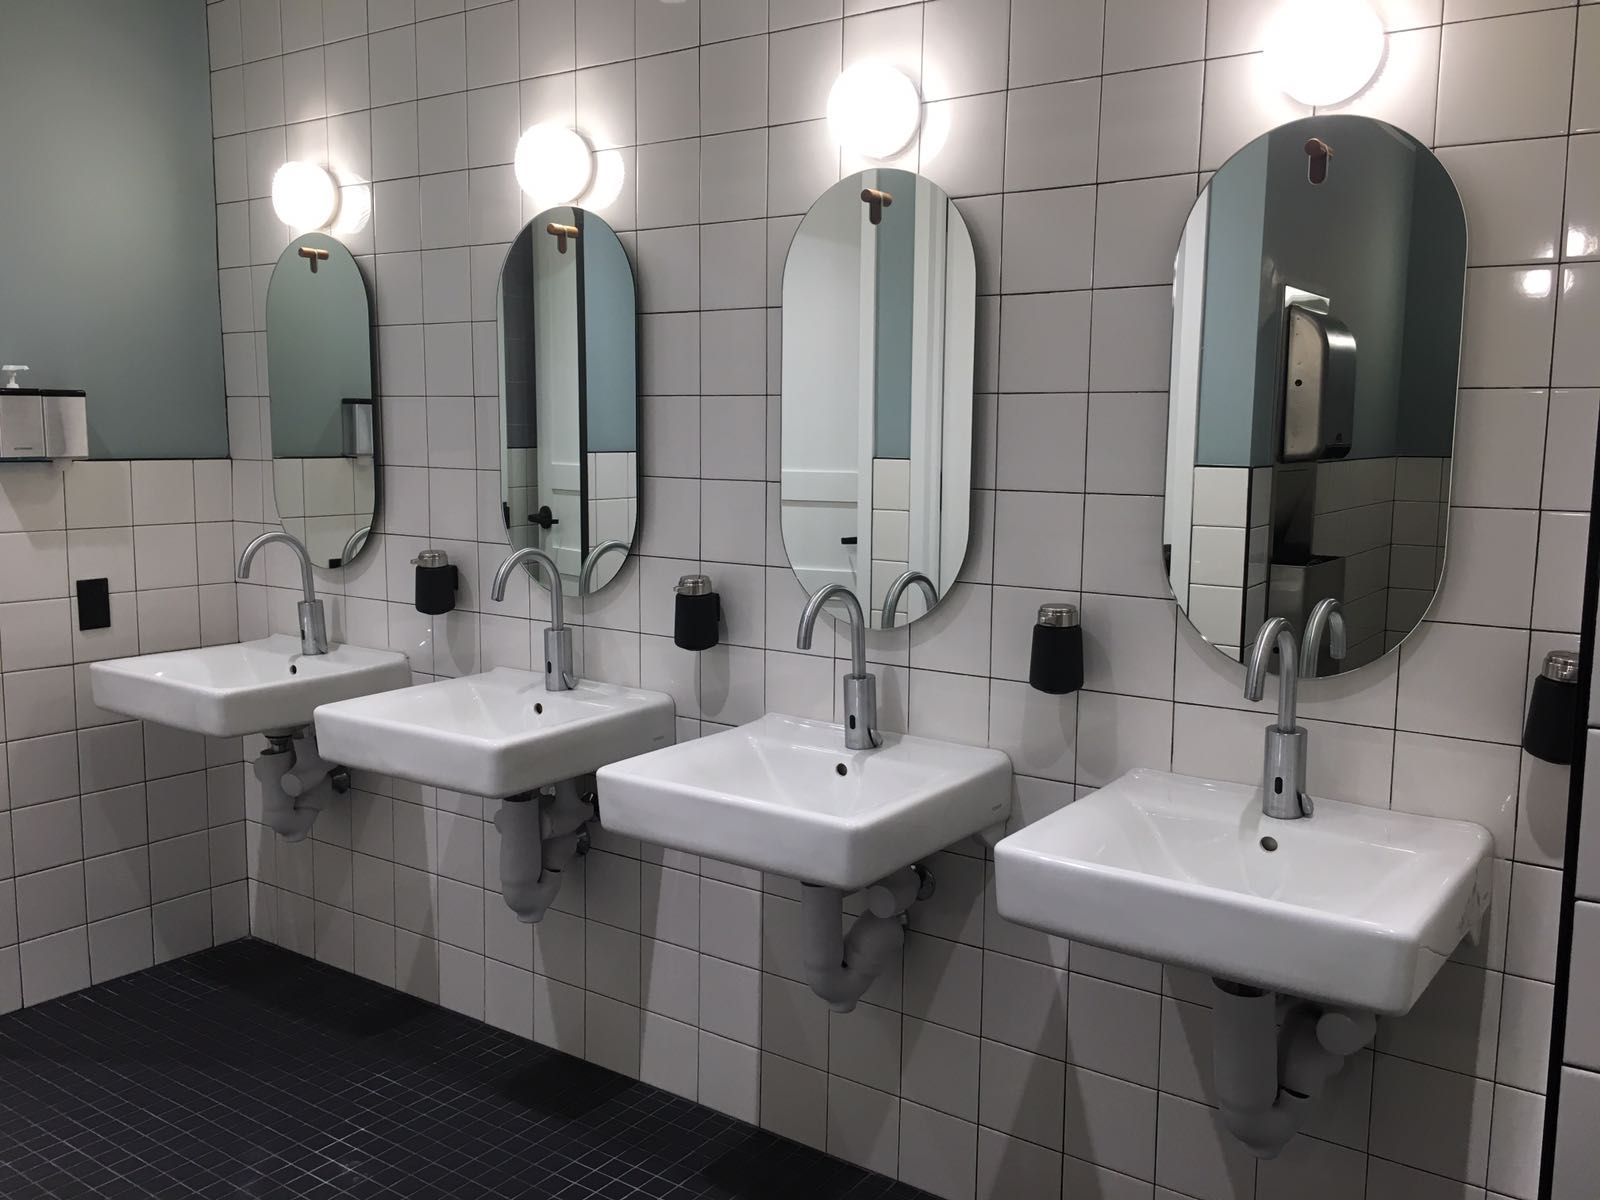 Location Wework Nyc Installation Stern S Dolphin 1000 Electronic Lavatory Faucet Operated By Ir Sensor Complete Wi Commercial Faucets Lavatory Faucet Faucet [ 1200 x 1600 Pixel ]